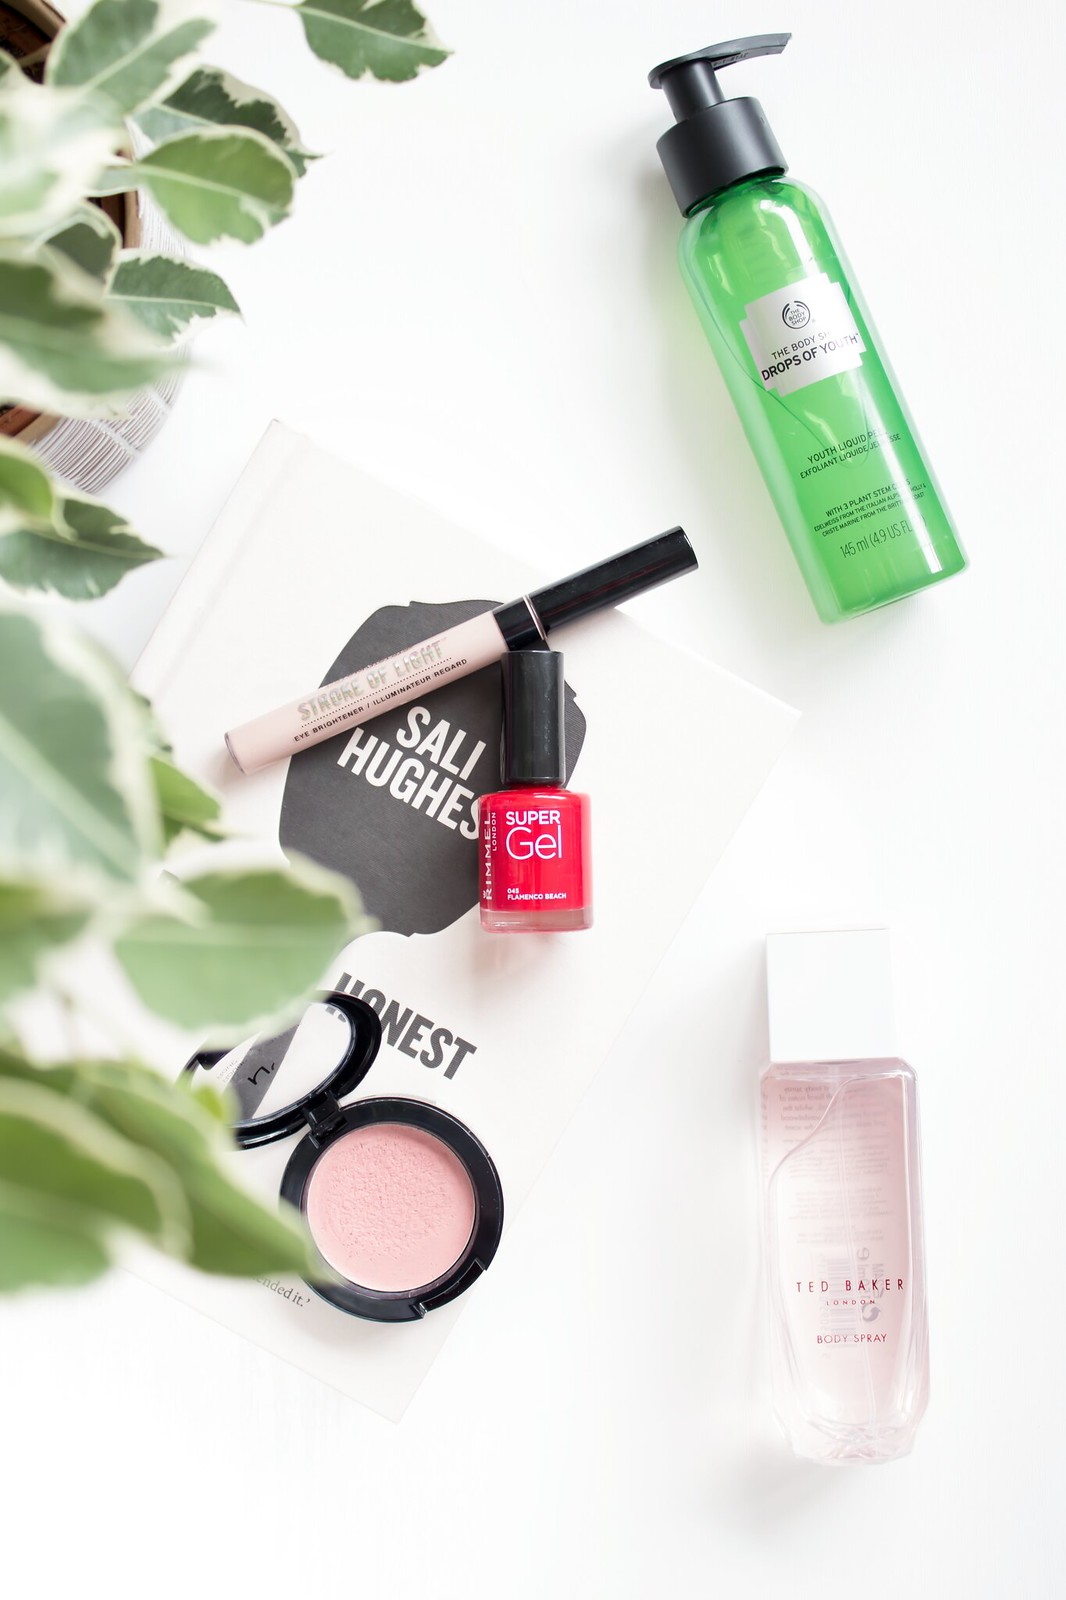 My Current Beauty Top Picks